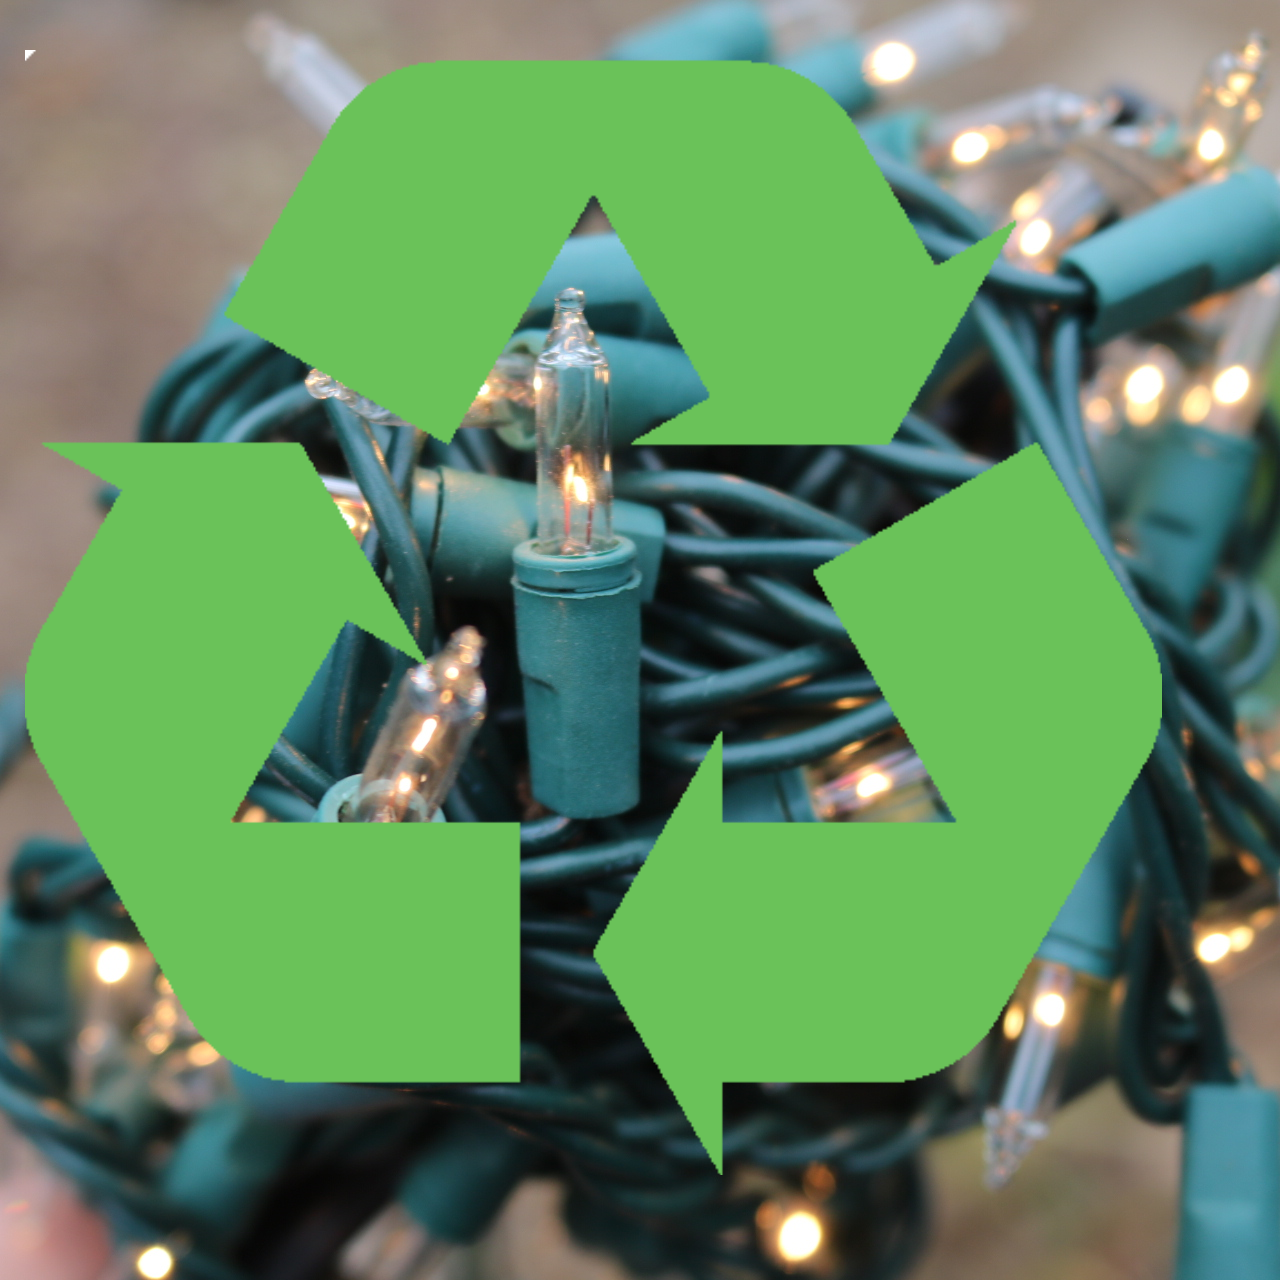 80129 Trash Pickup Christmas 2021 How To Recycle Old Broken Christmas Lights Cnet